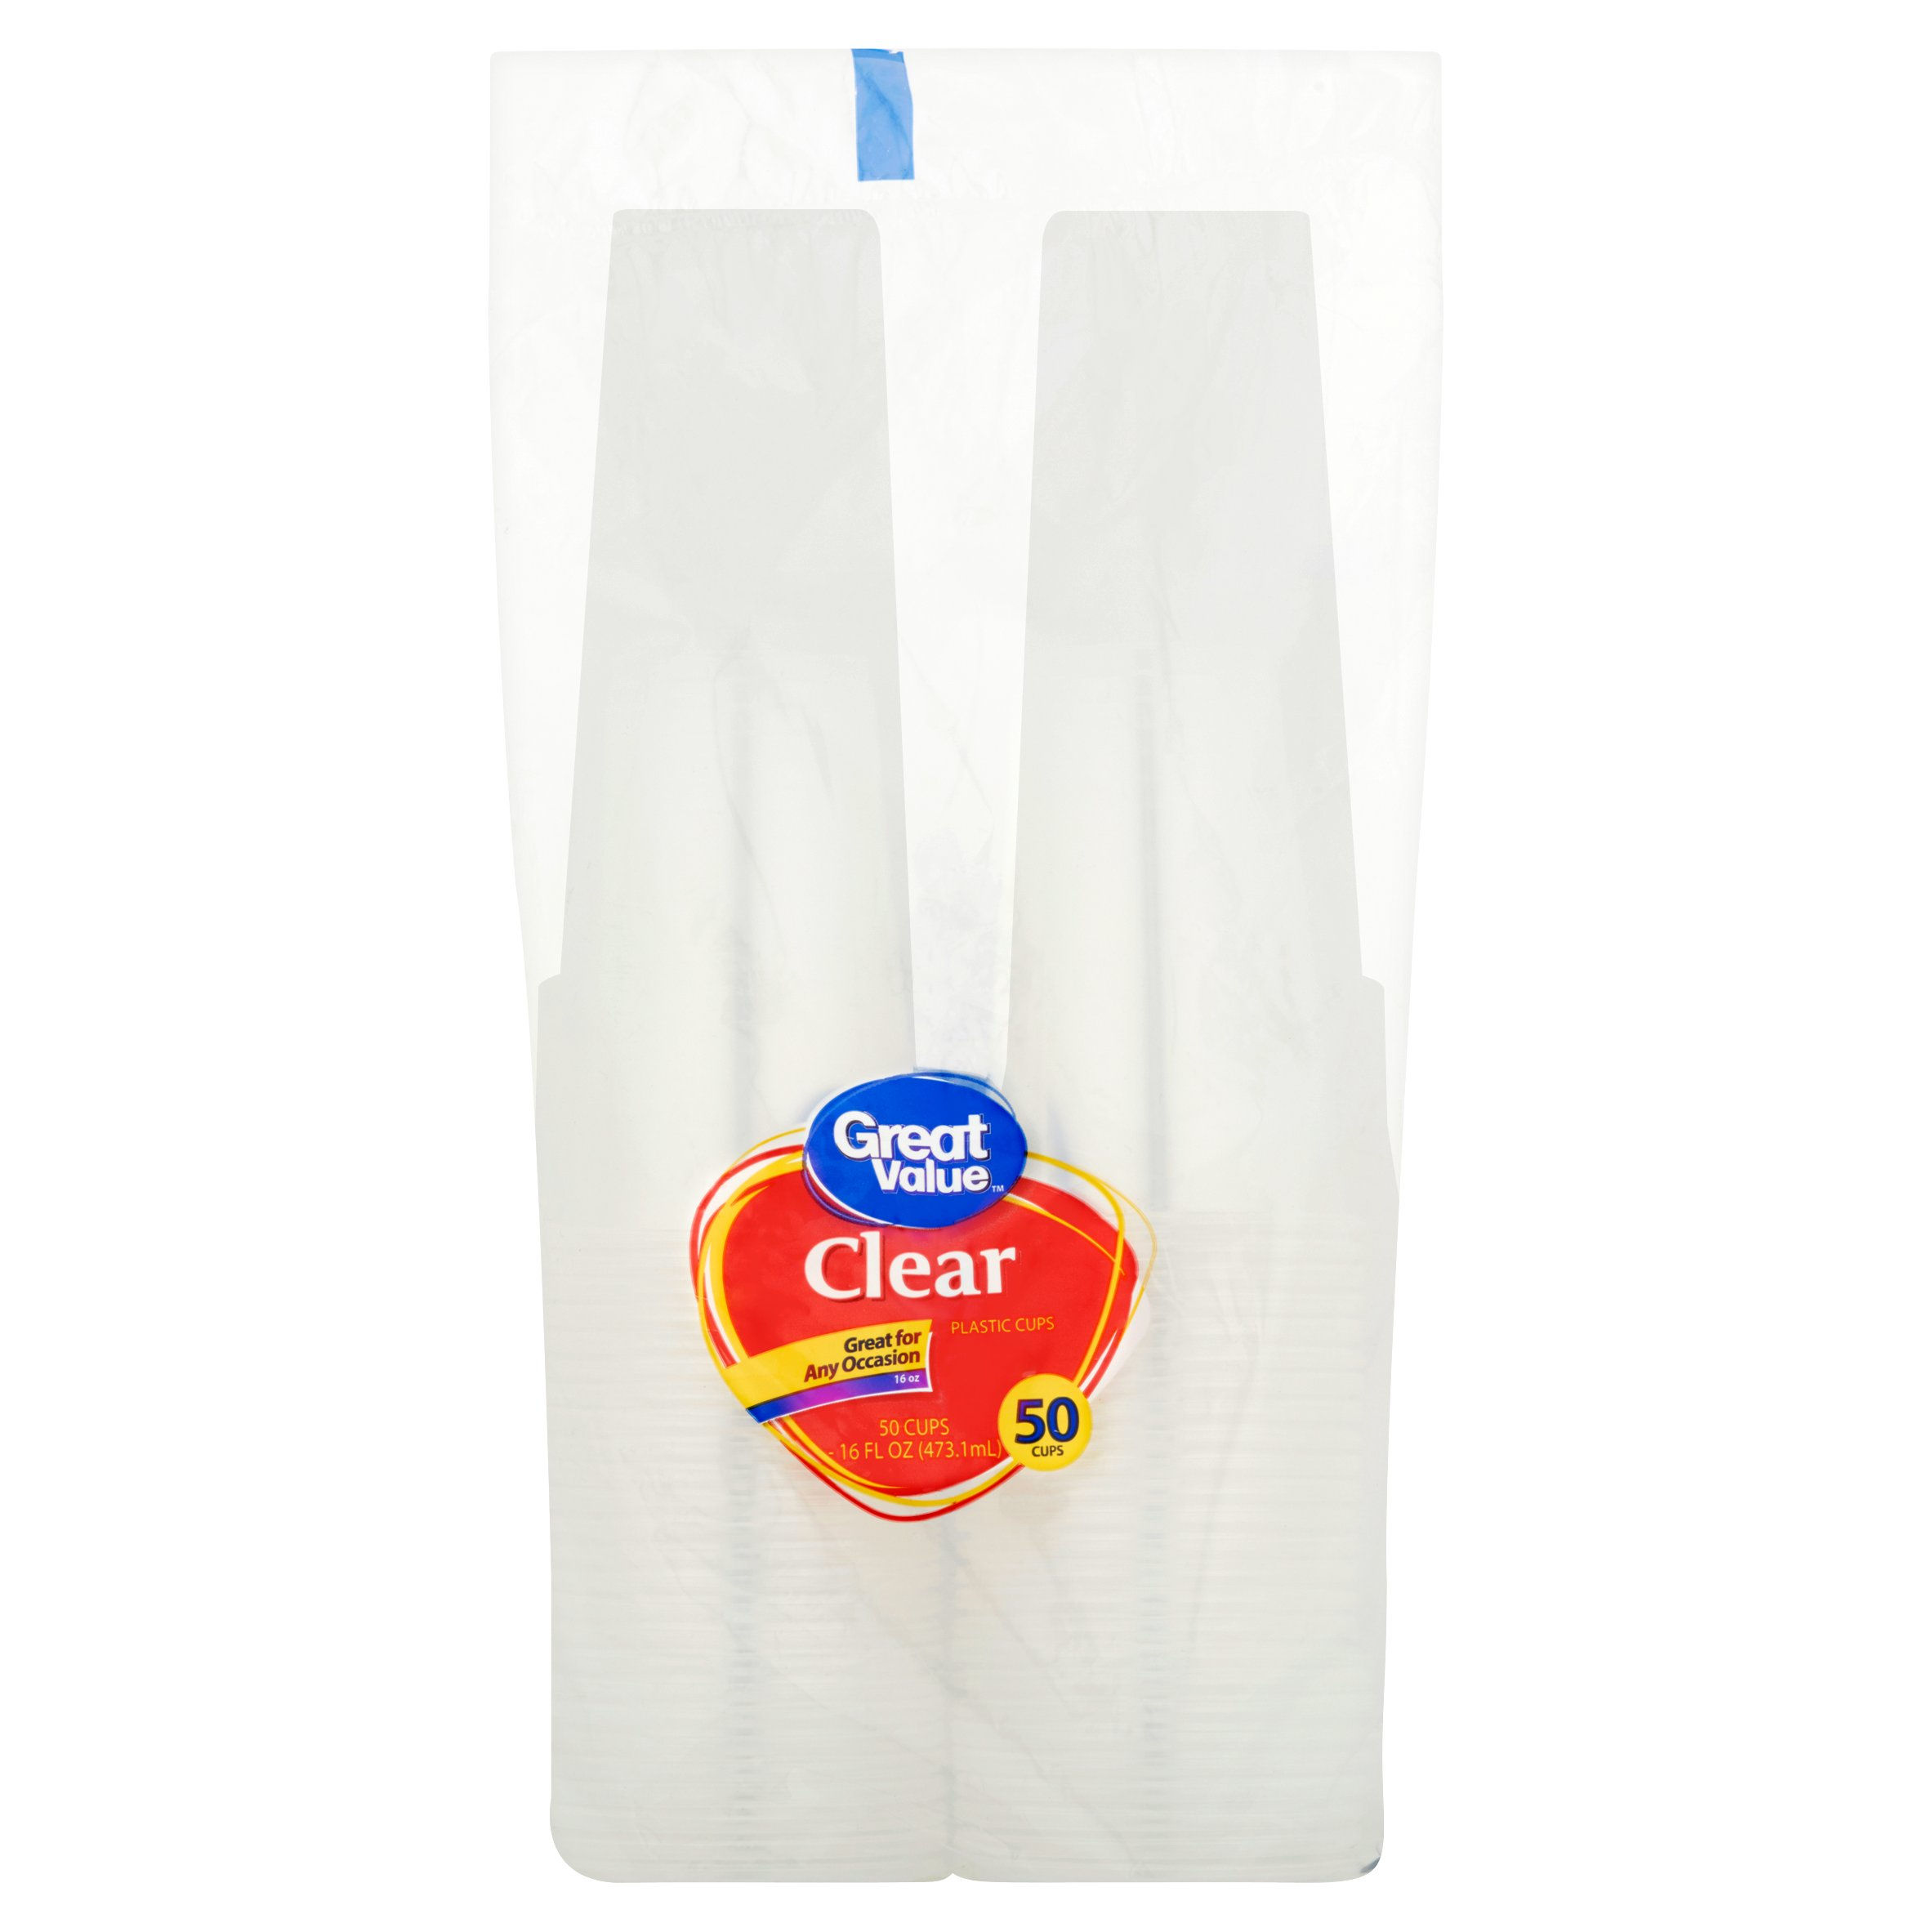 Great Value 16 oz Clear Cups, 50 ct